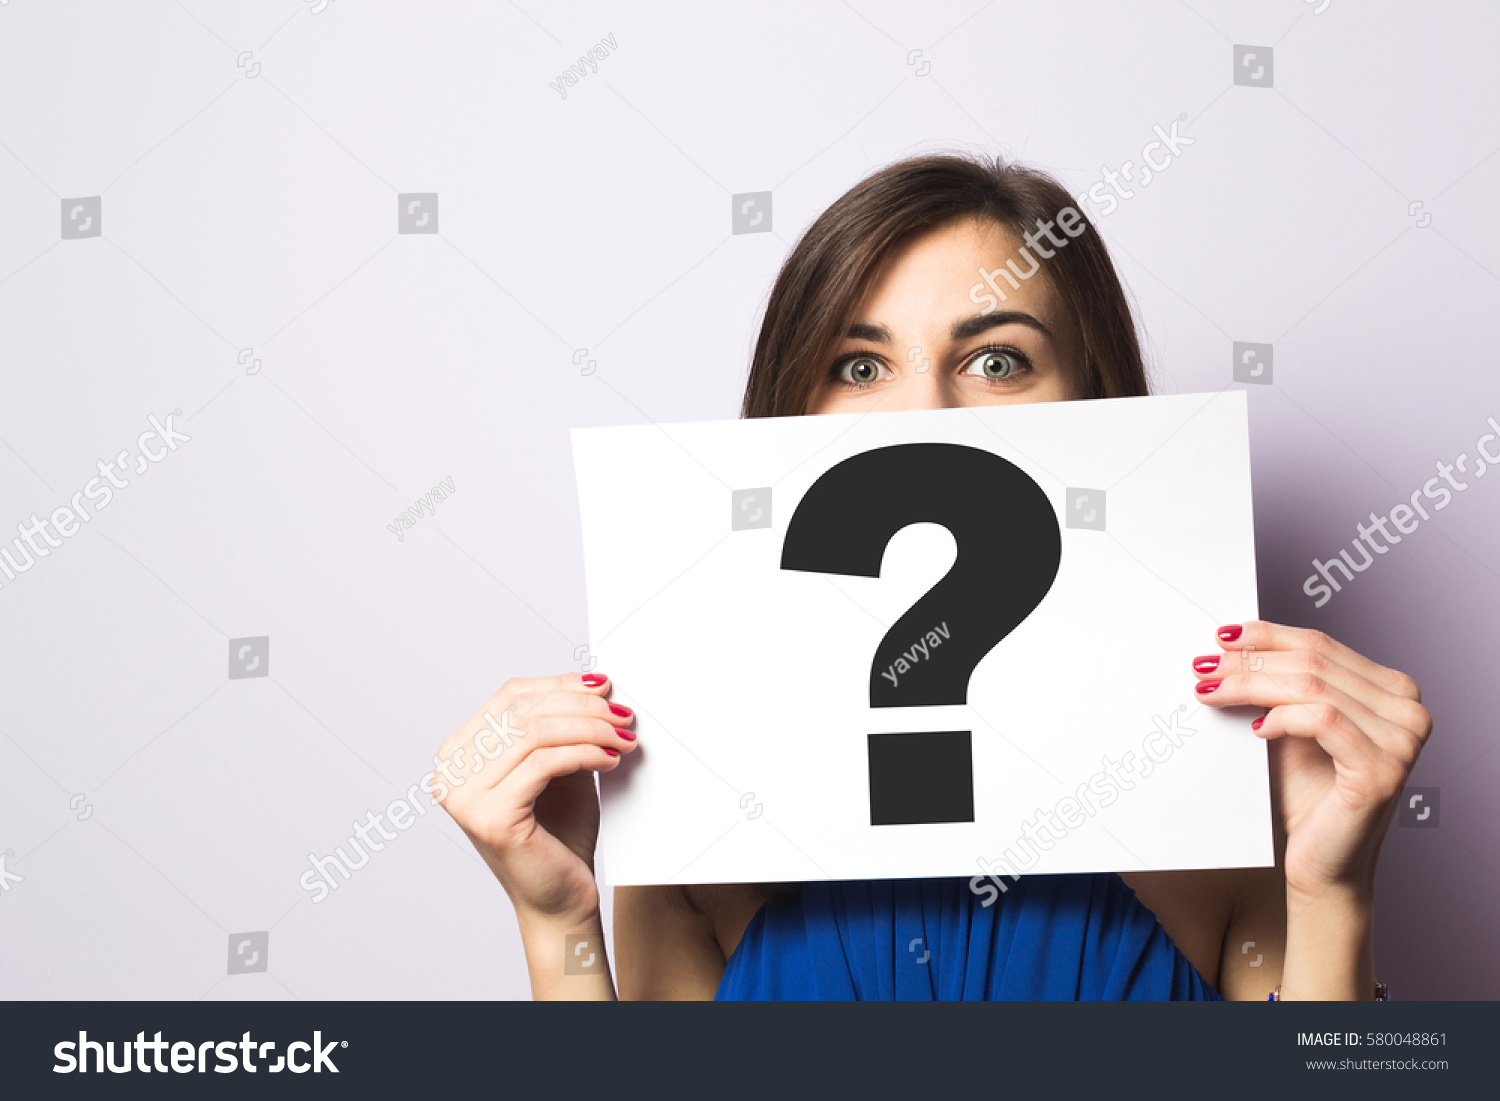 girl holding signboard question mark の写真素材 今すぐ編集